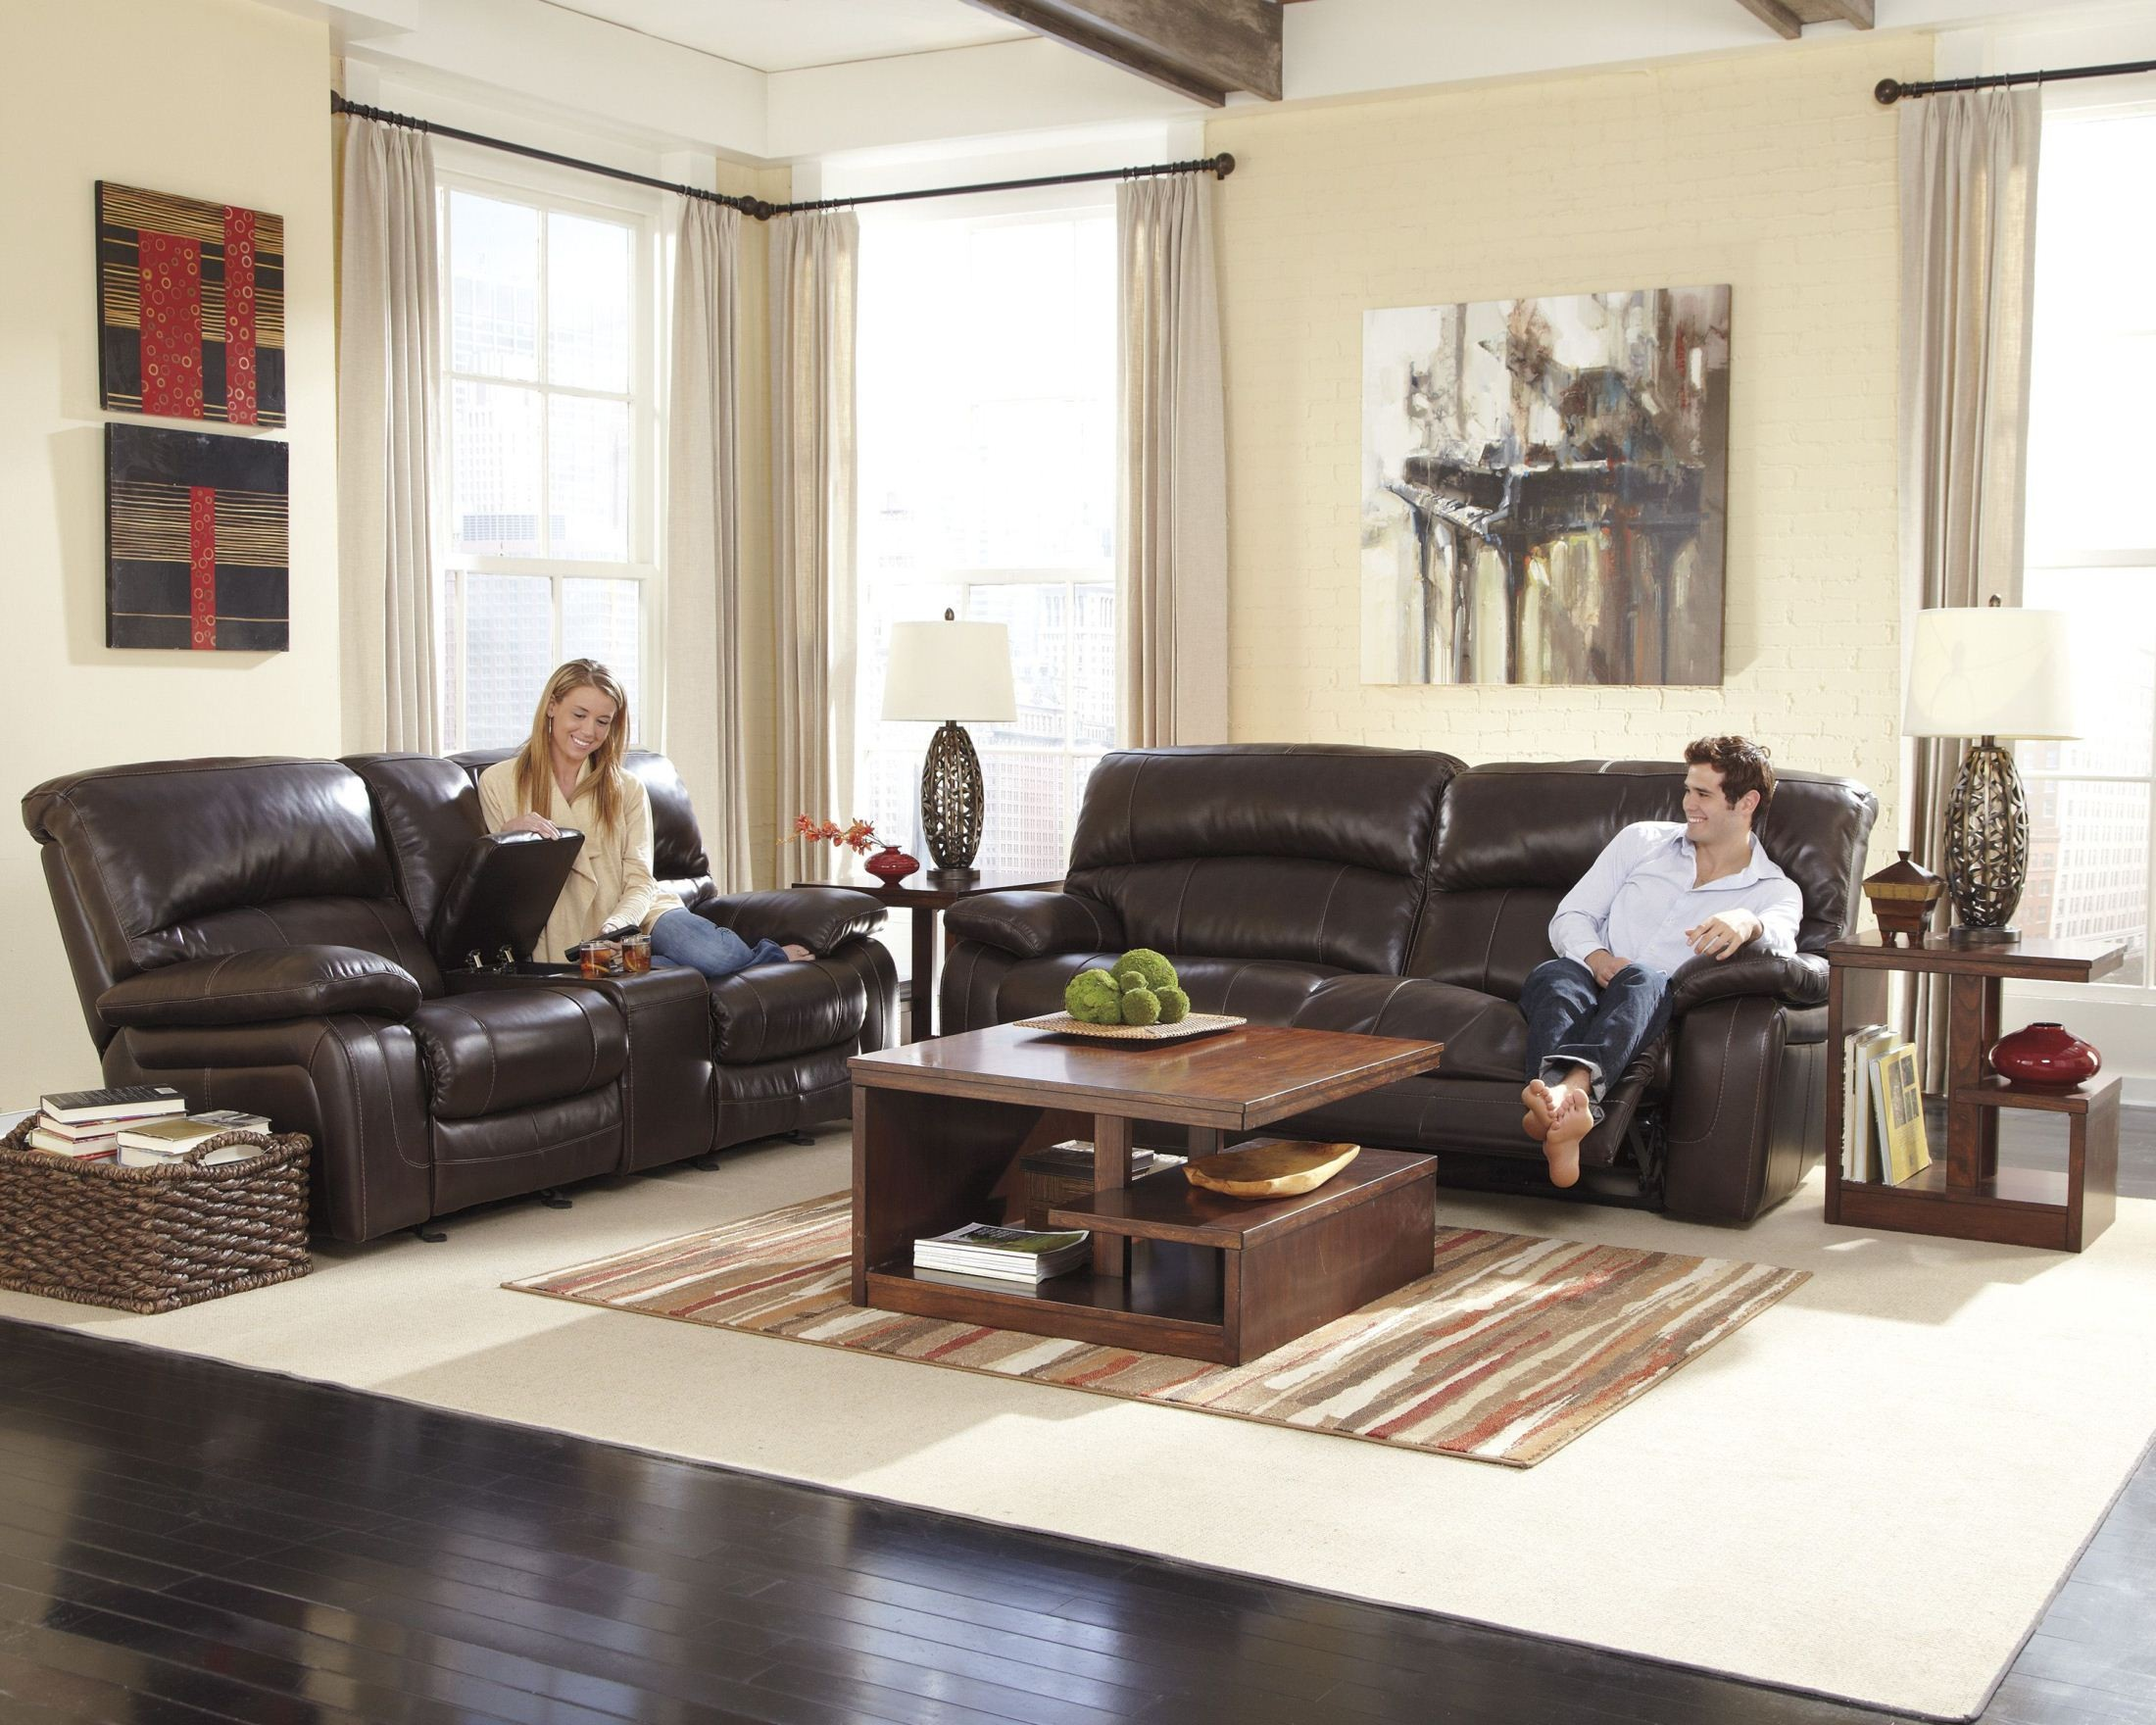 living room recliner. 818185 Damacio Dark Brown 2 Seat Power Reclining Sofa from Ashley